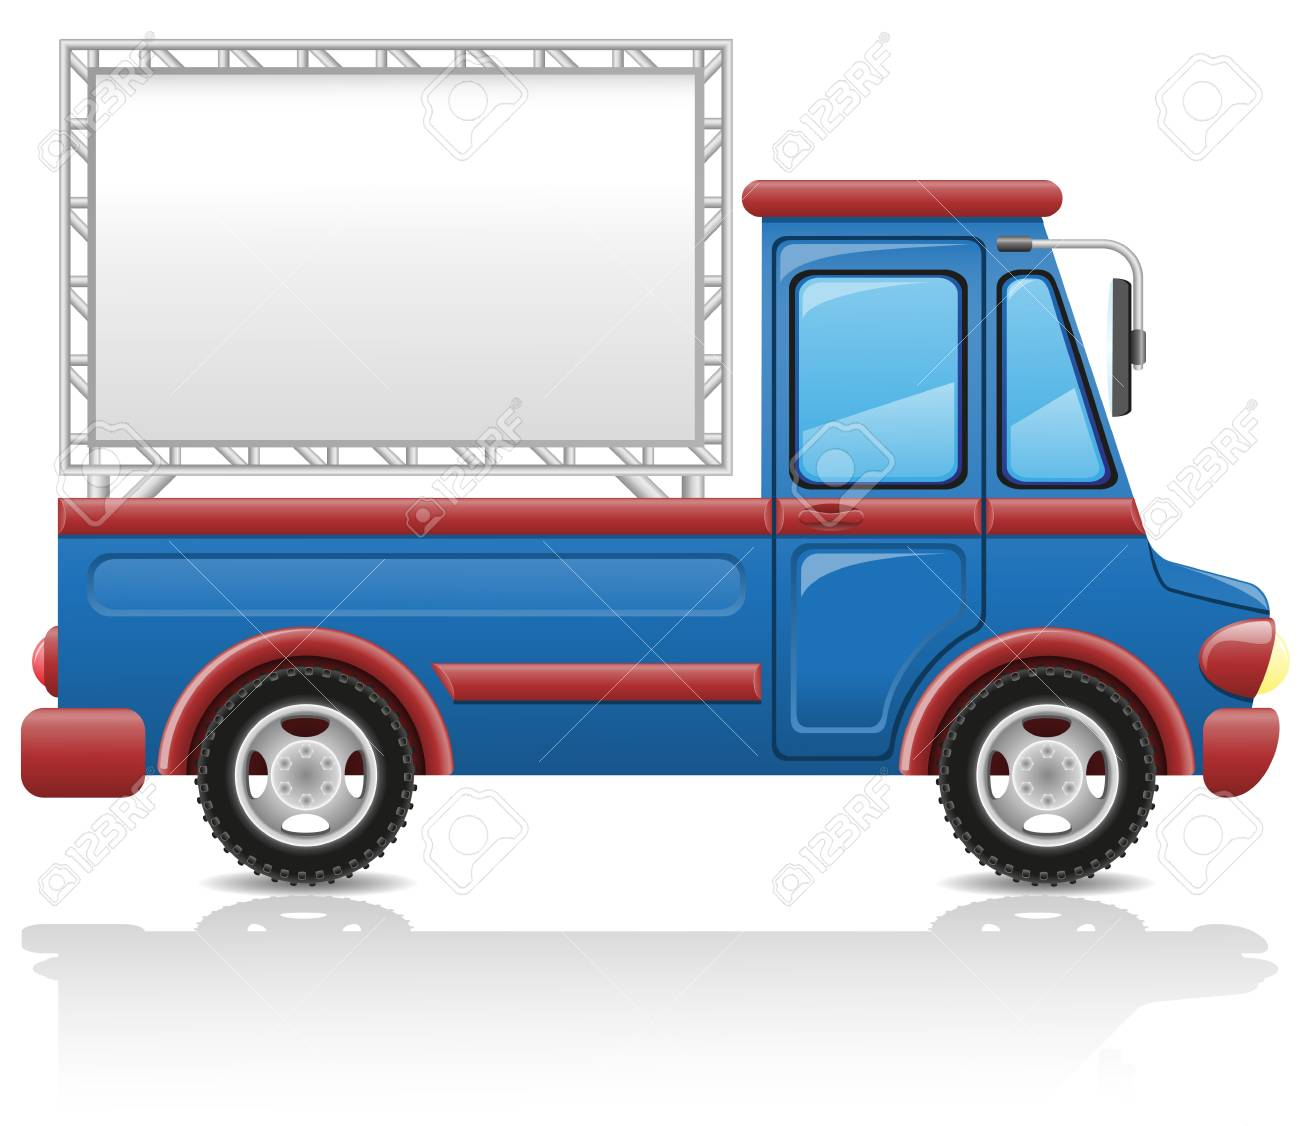 car with a billboard illustration isolated on white background Stock Illustration - 15162183